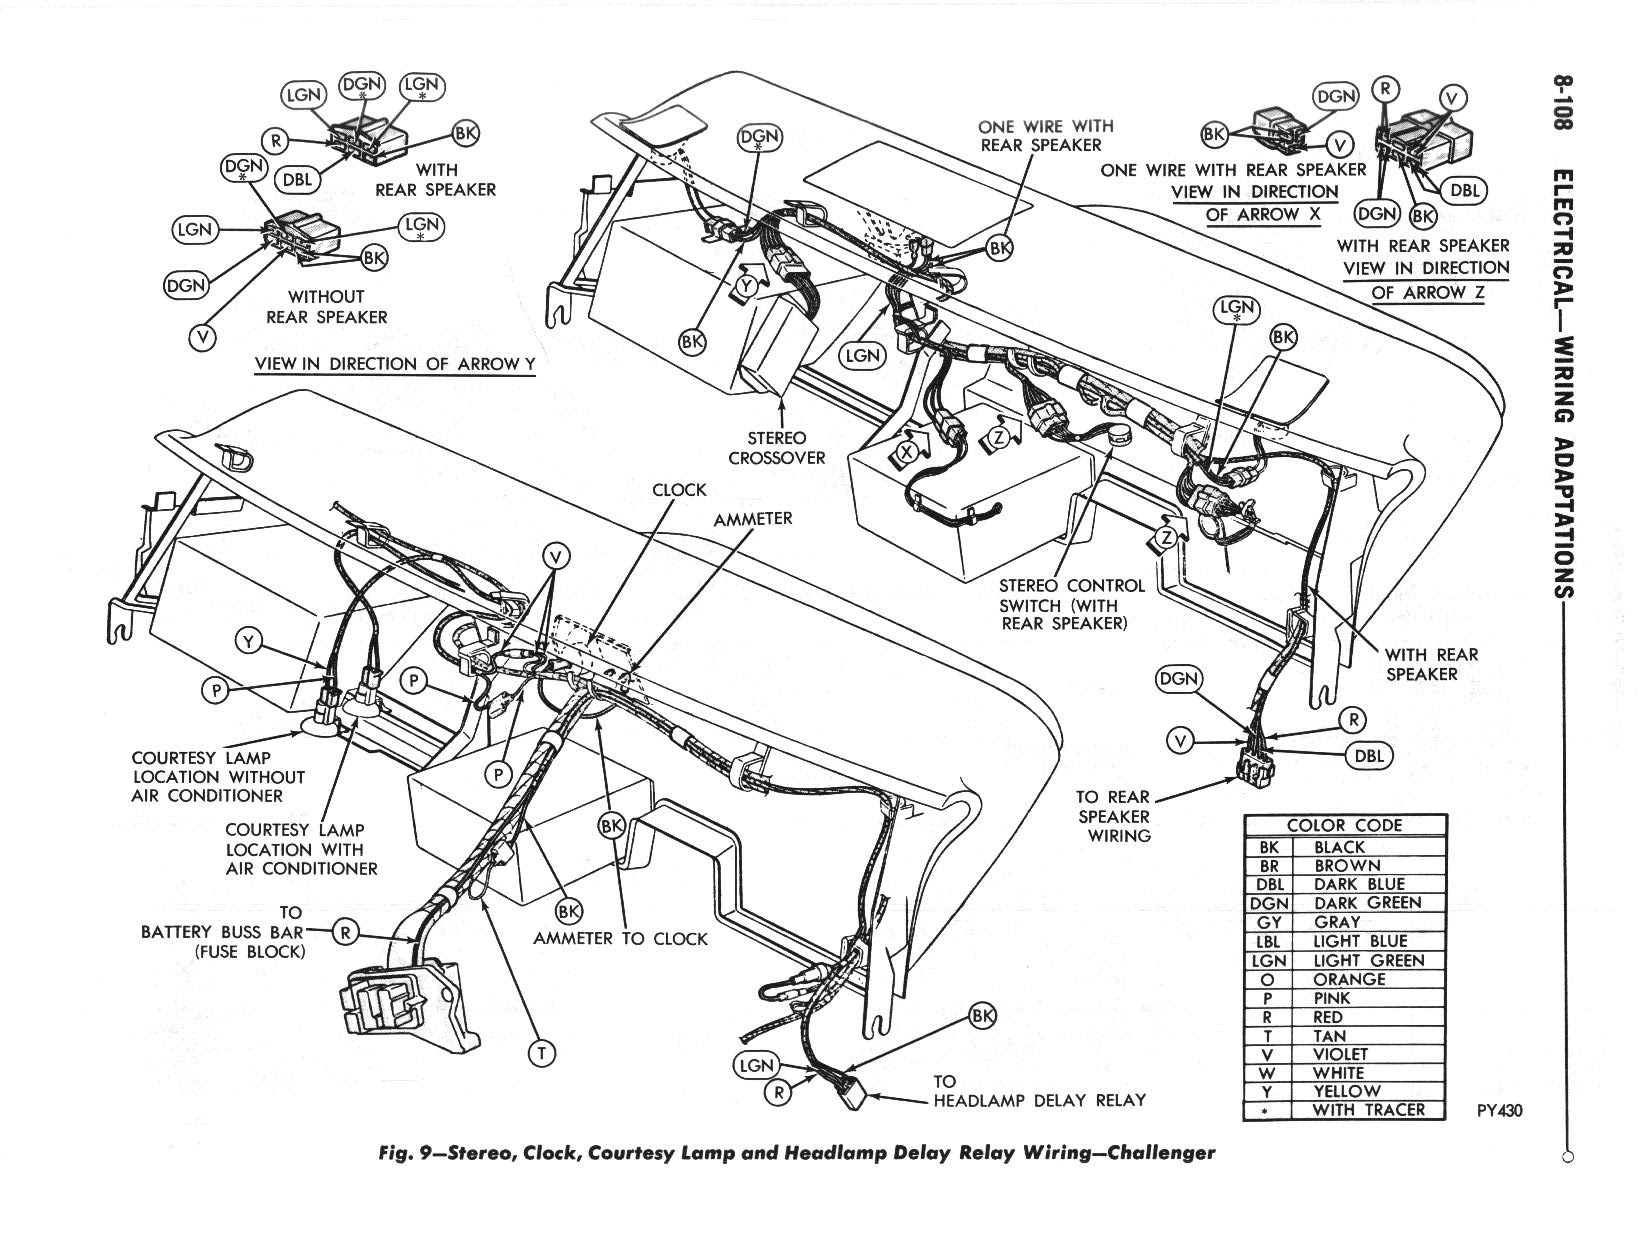 Dodge Challenger Wiring Diagram